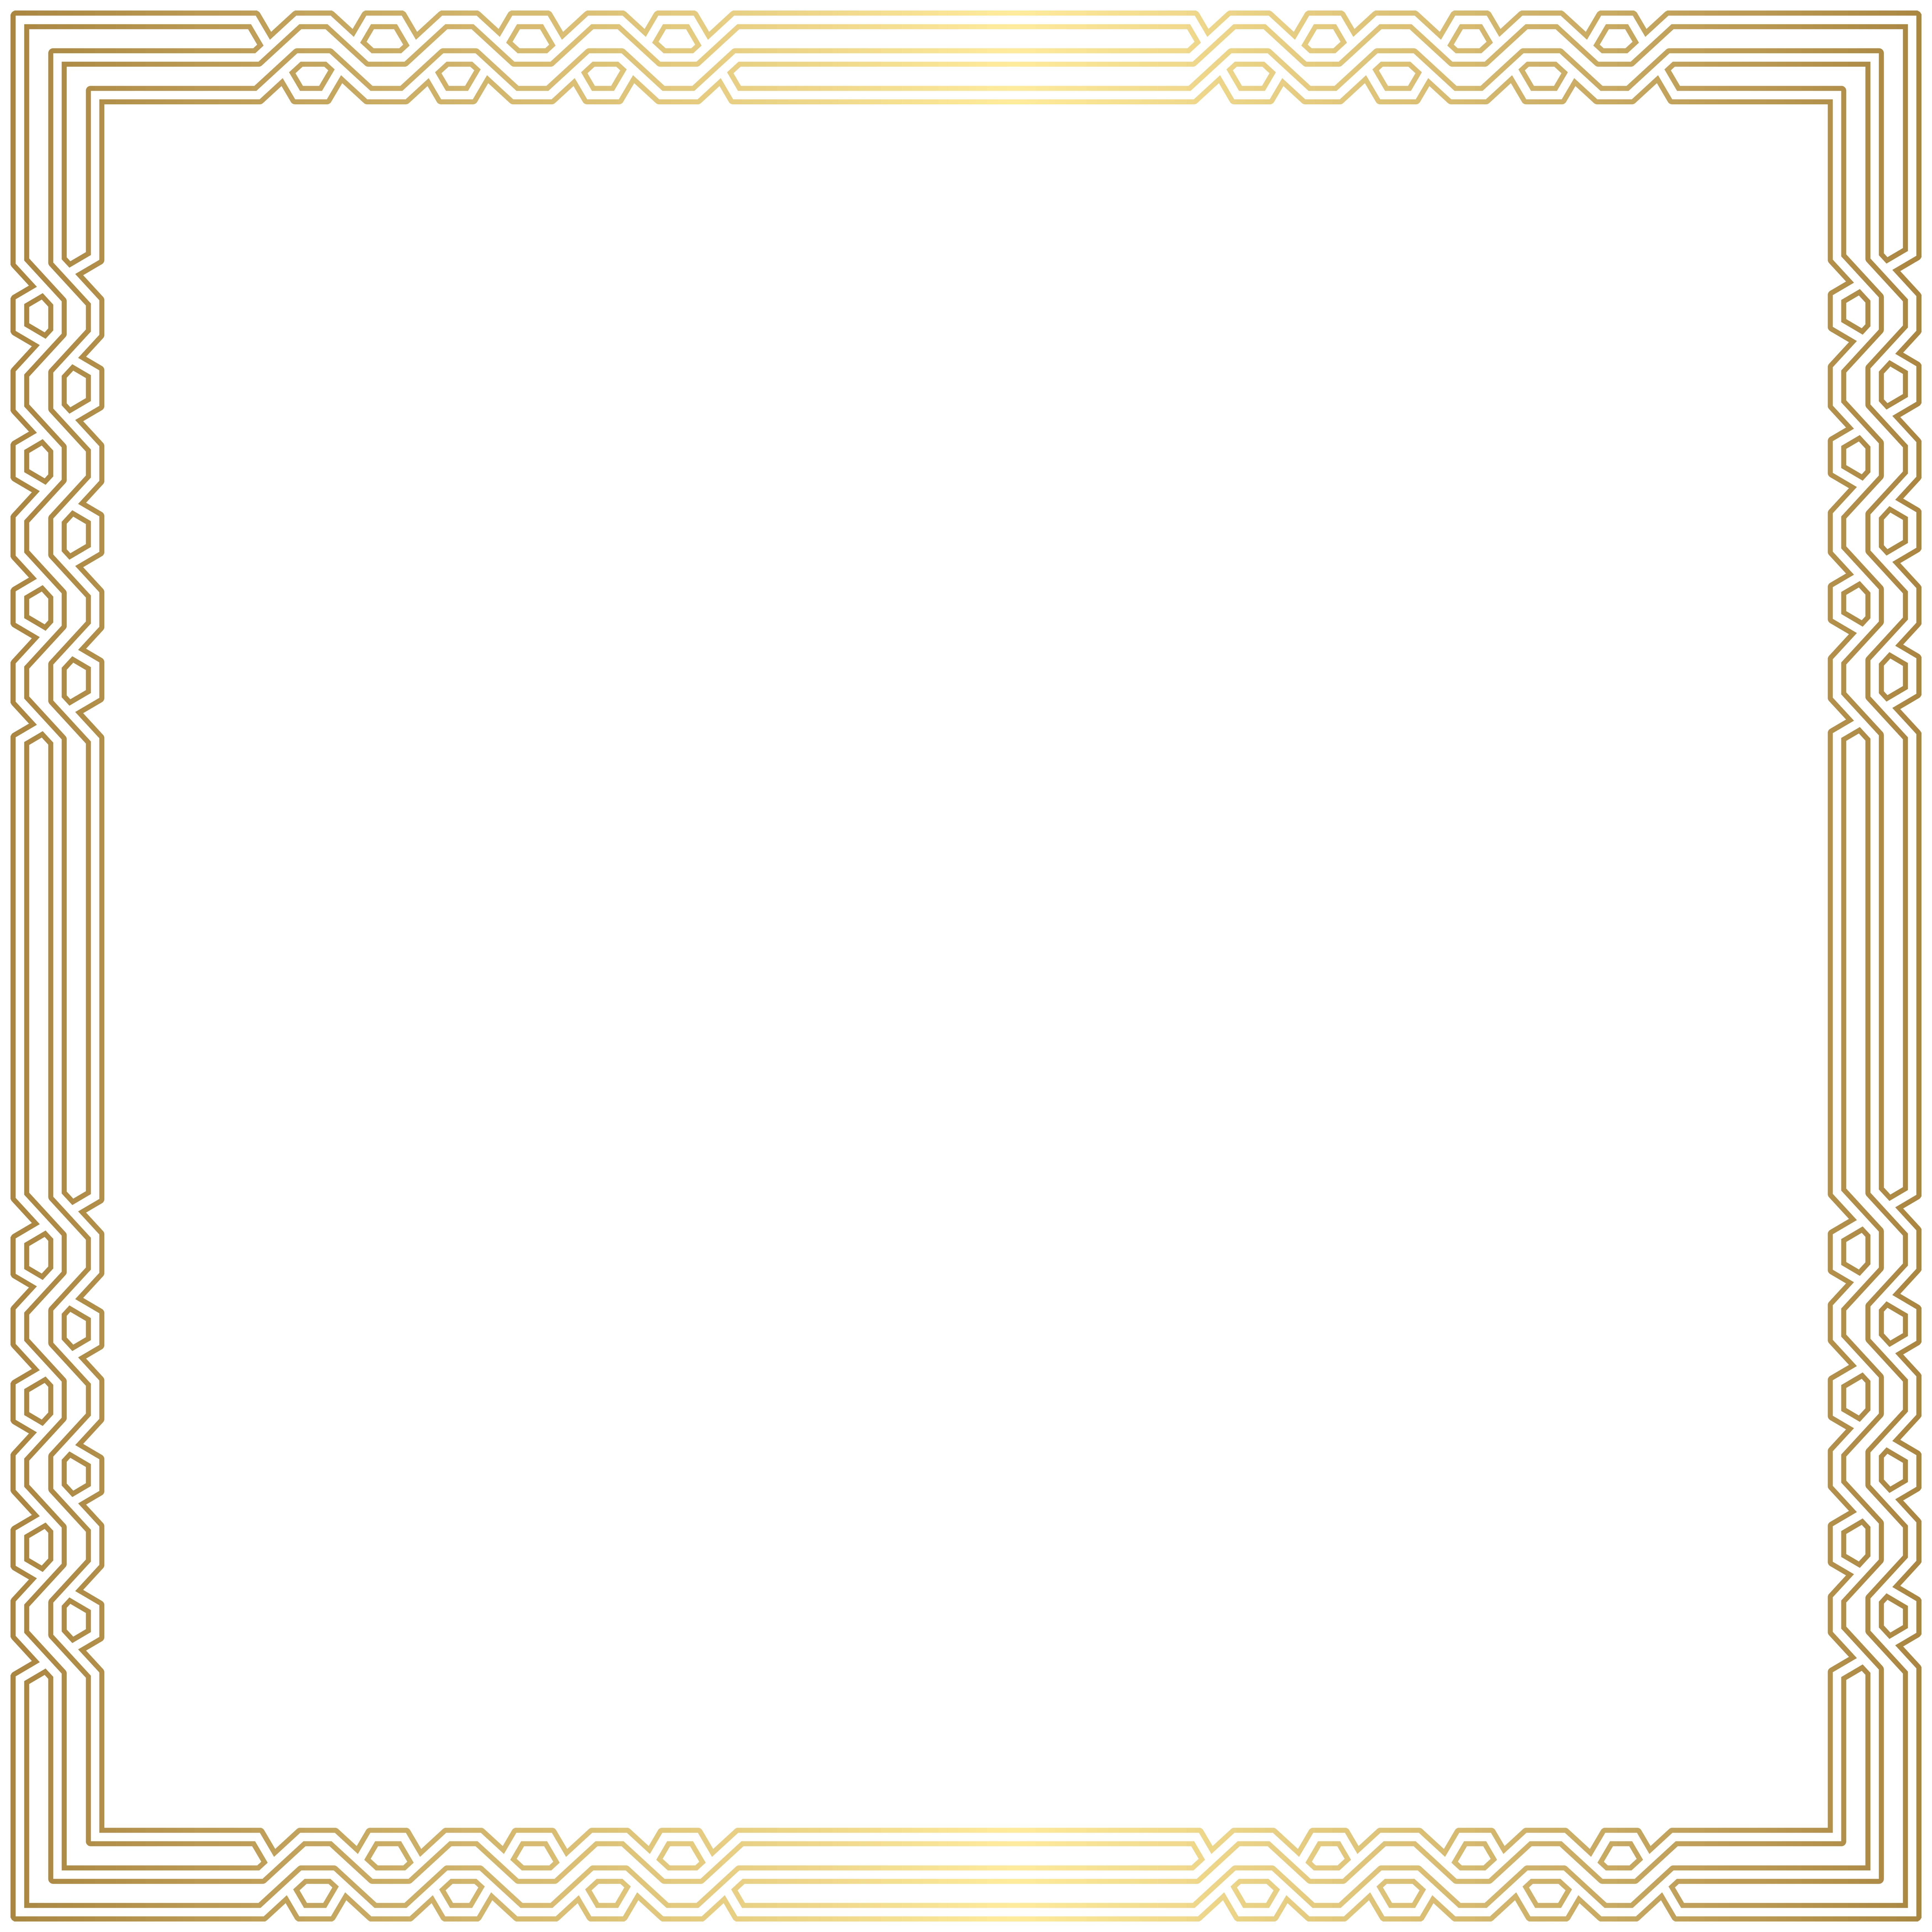 Square border png. Download computer file frame